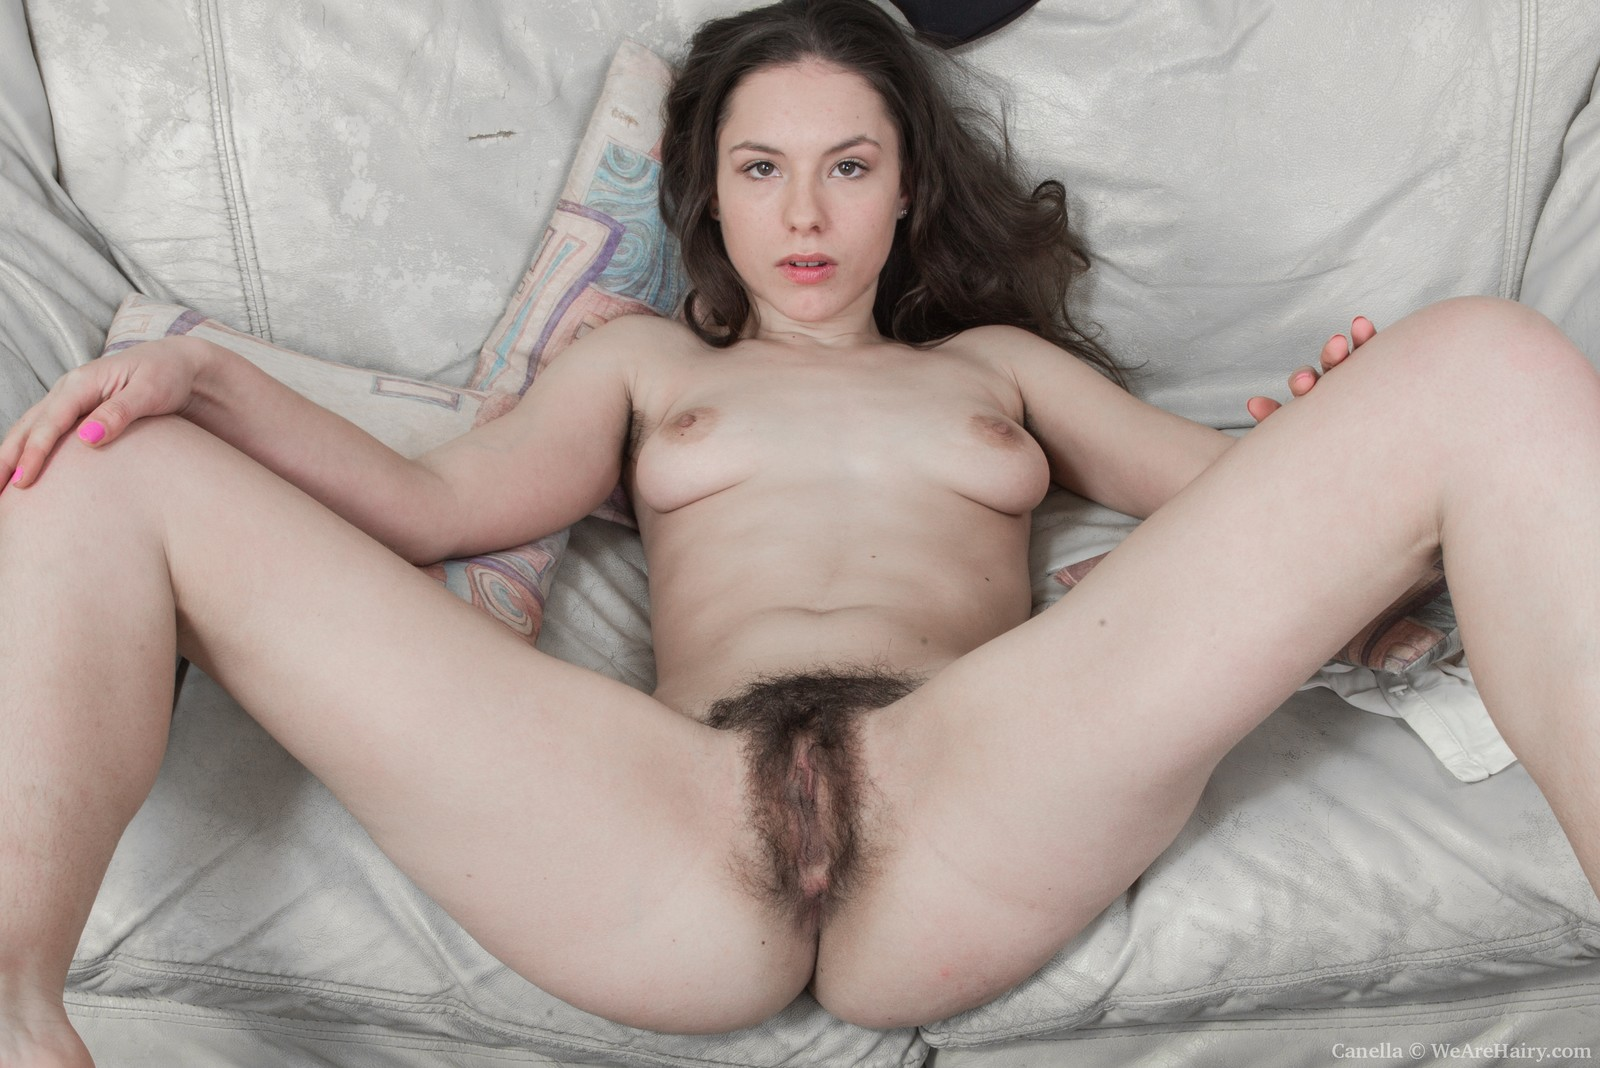 canella is beautiful in blue and naked too - hairymania